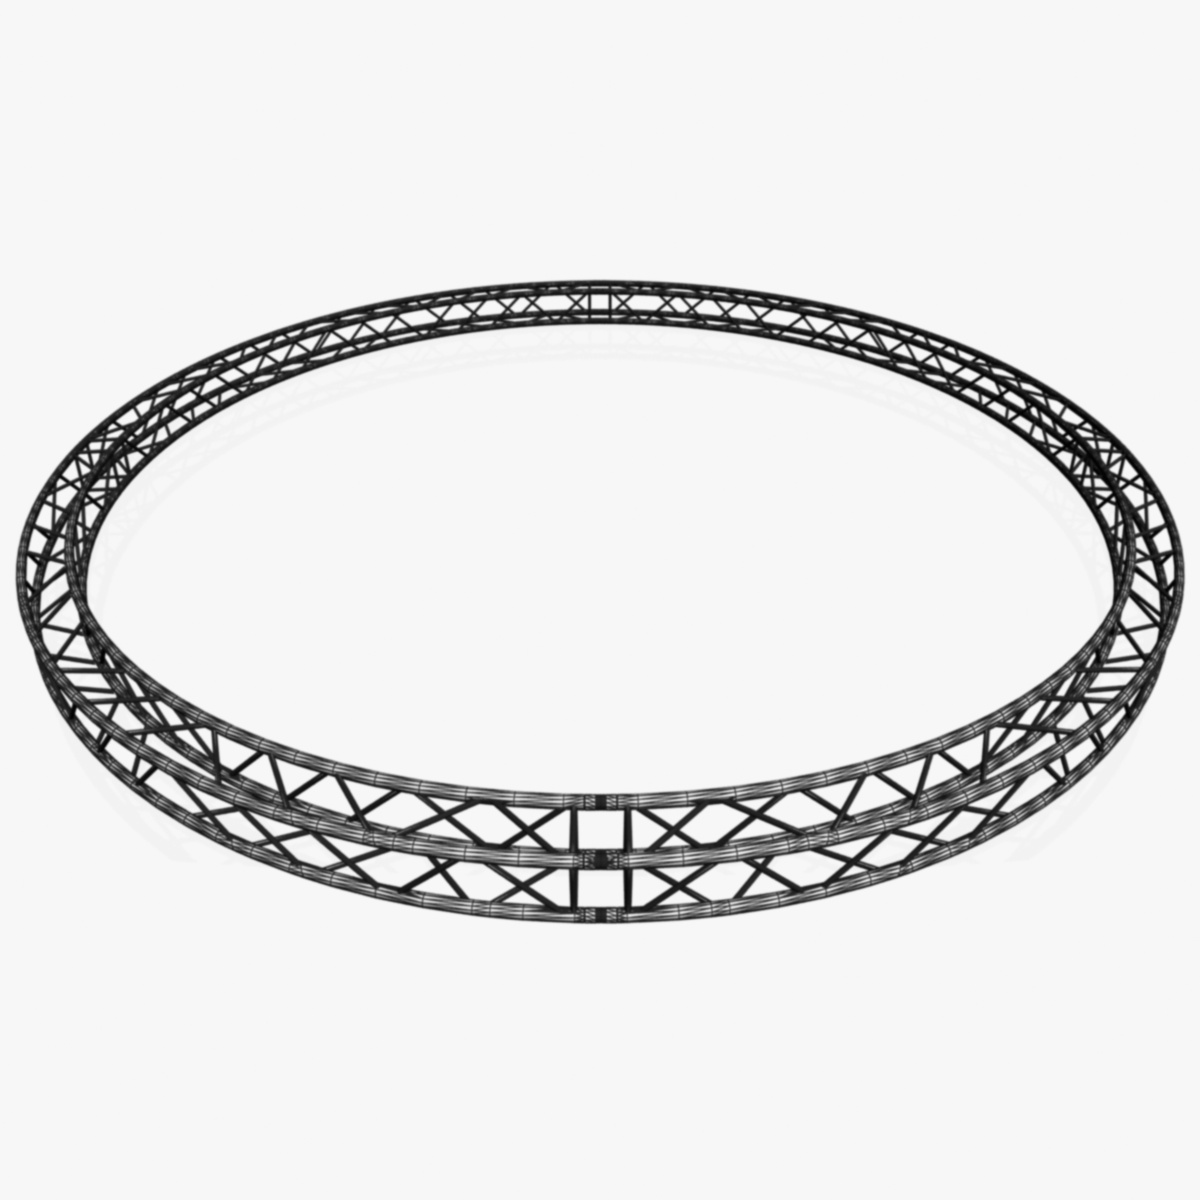 circle square truss (full diameter 600cm) 3d model 3ds max dxf fbx c4d dae  obj 253105